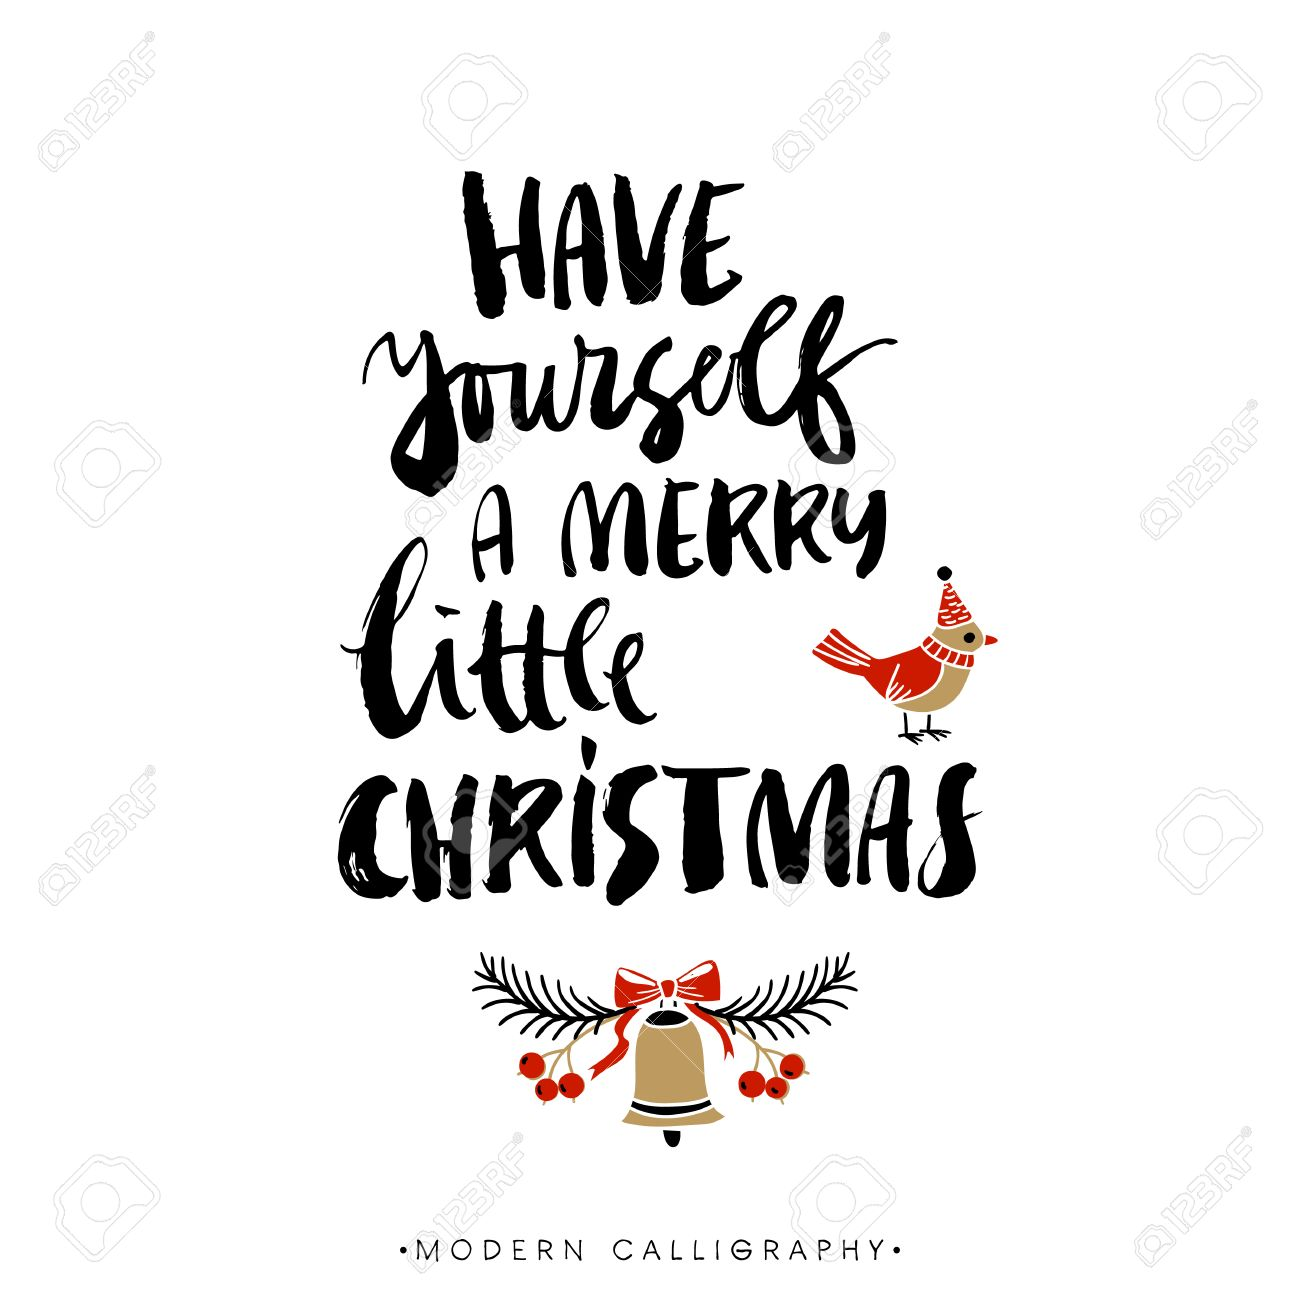 have yourself a merry little christmas christmas calligraphy